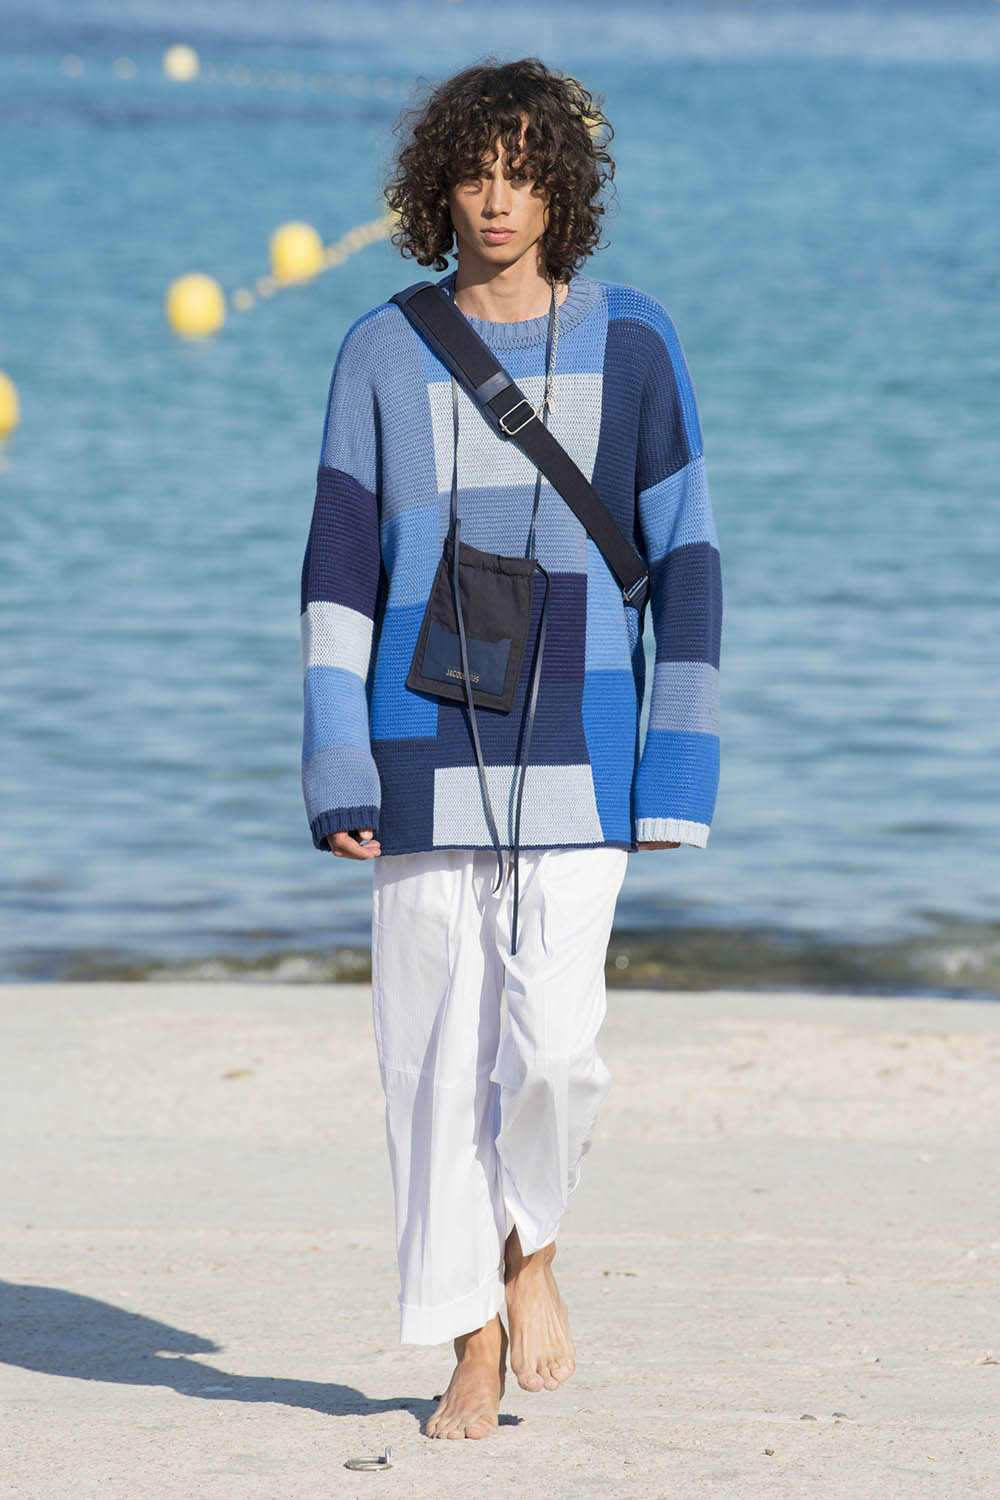 Jacquemus Paris Fashion Week Men's SS19 - Sagaboi - Look 16